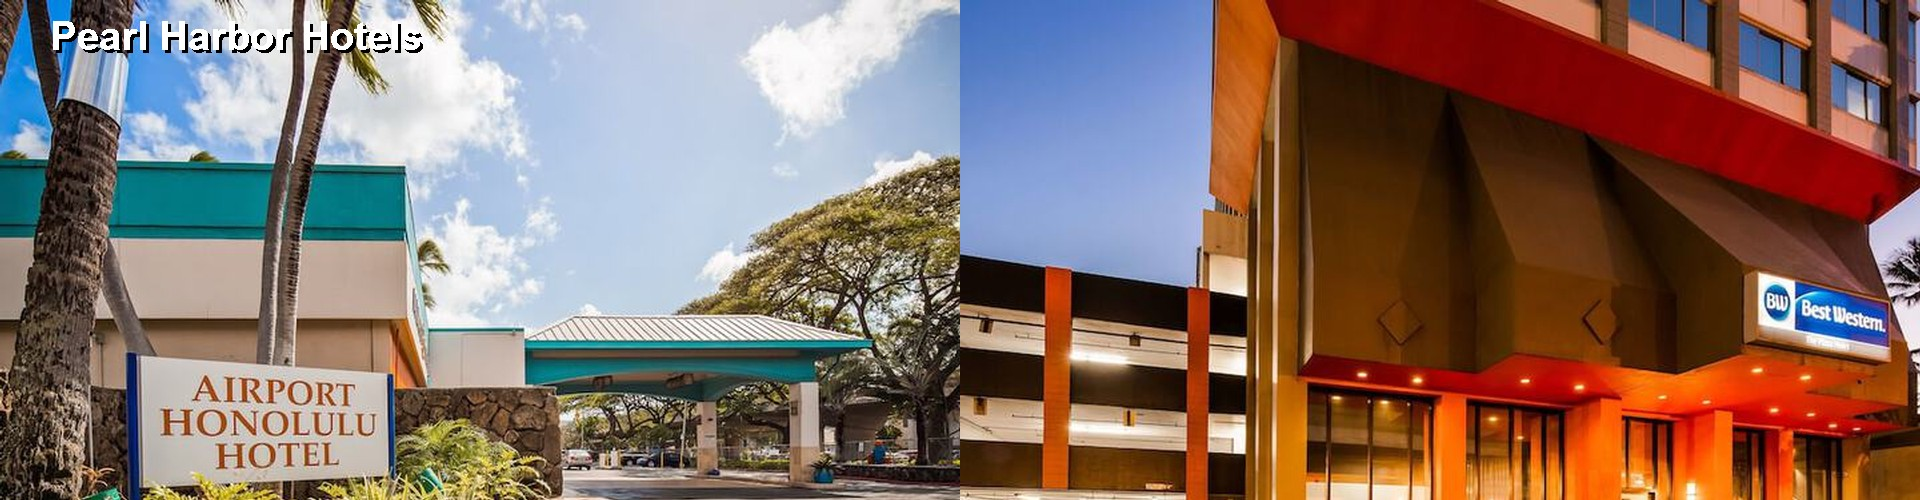 5 Best Hotels near Pearl Harbor